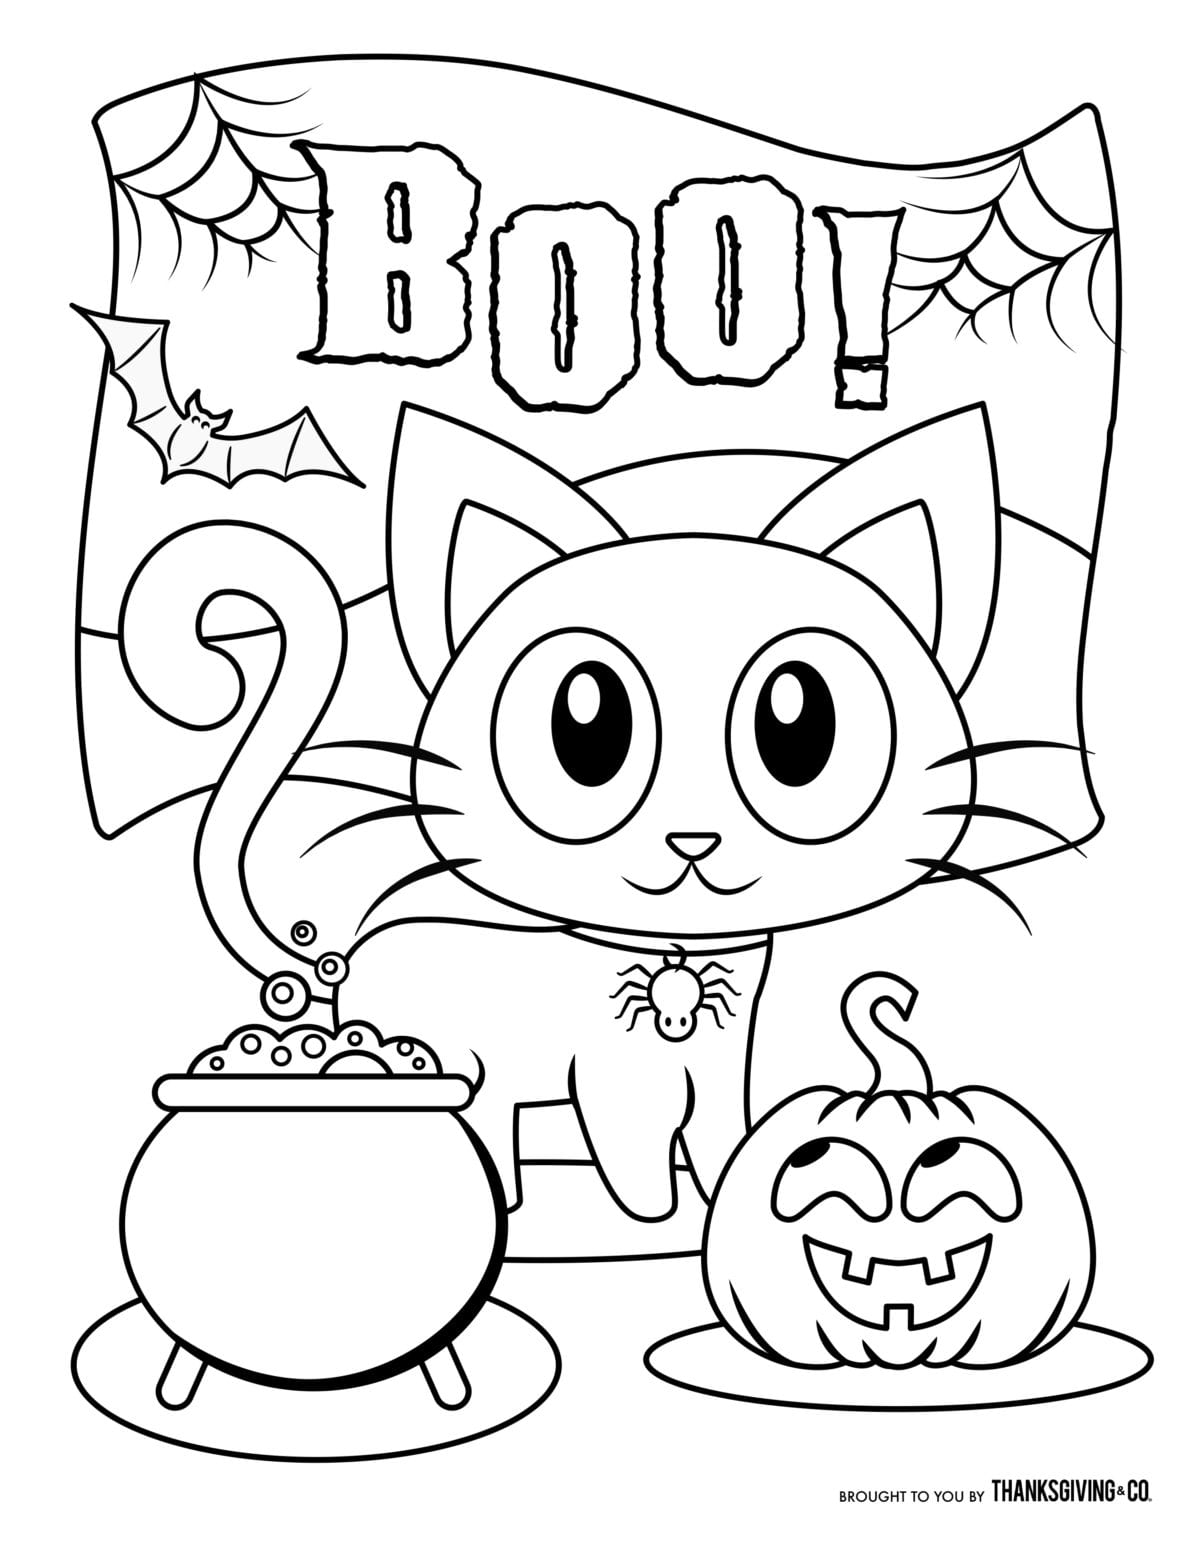 Free Halloween Coloring Pages For Kids (or For The Kid In You